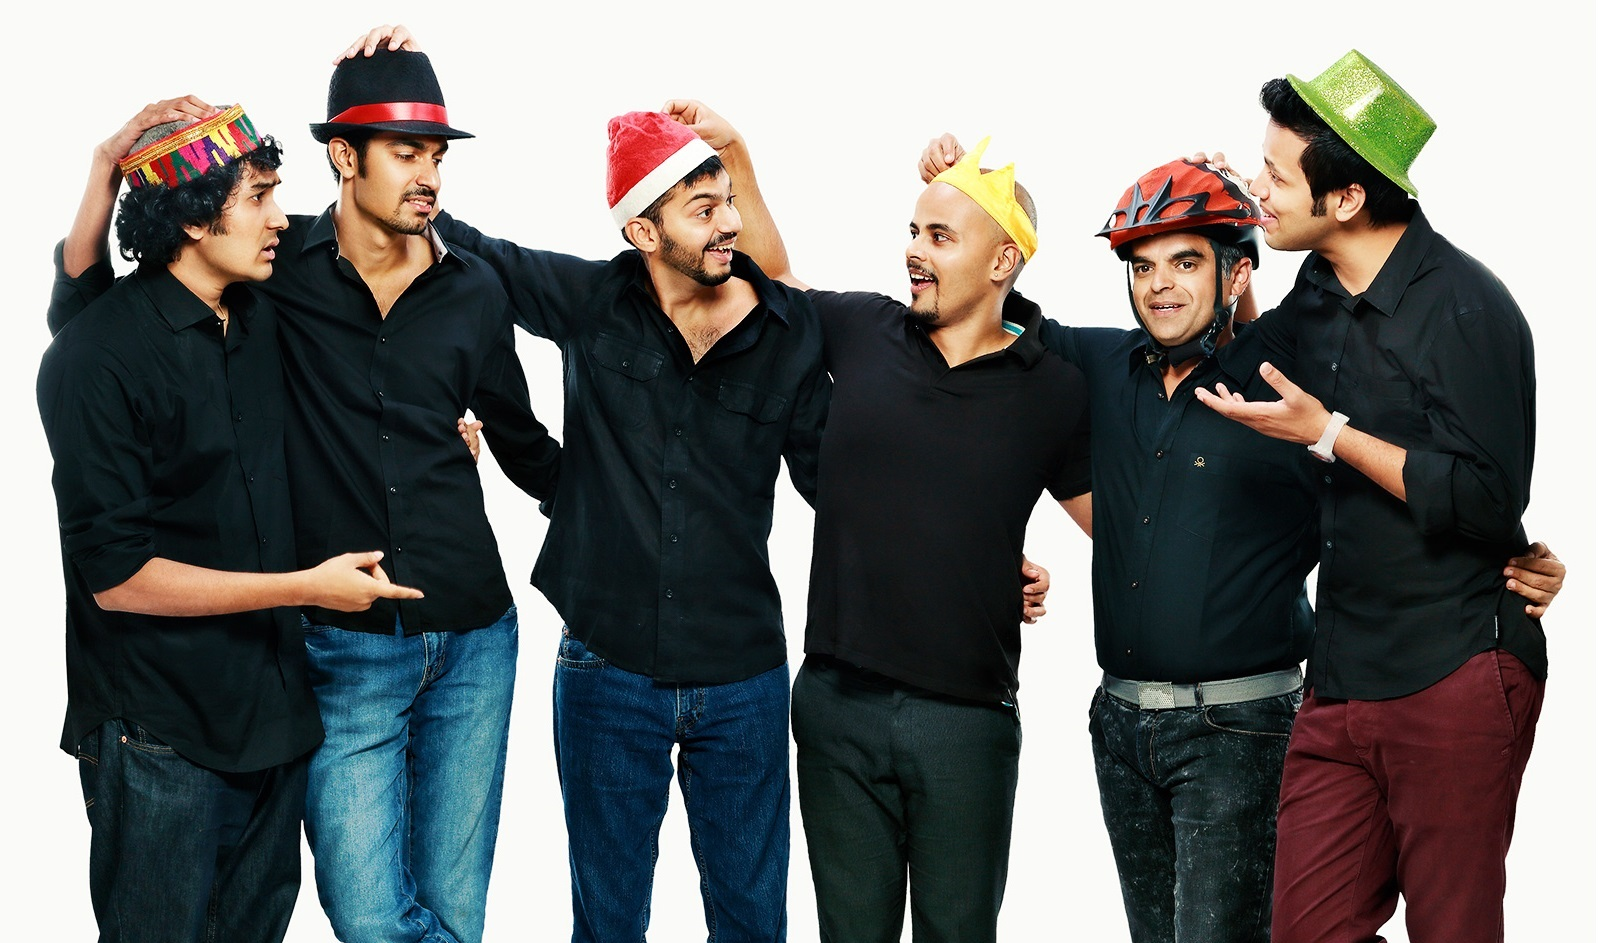 Headline for Make way, the Indian stand-up comedians are here!